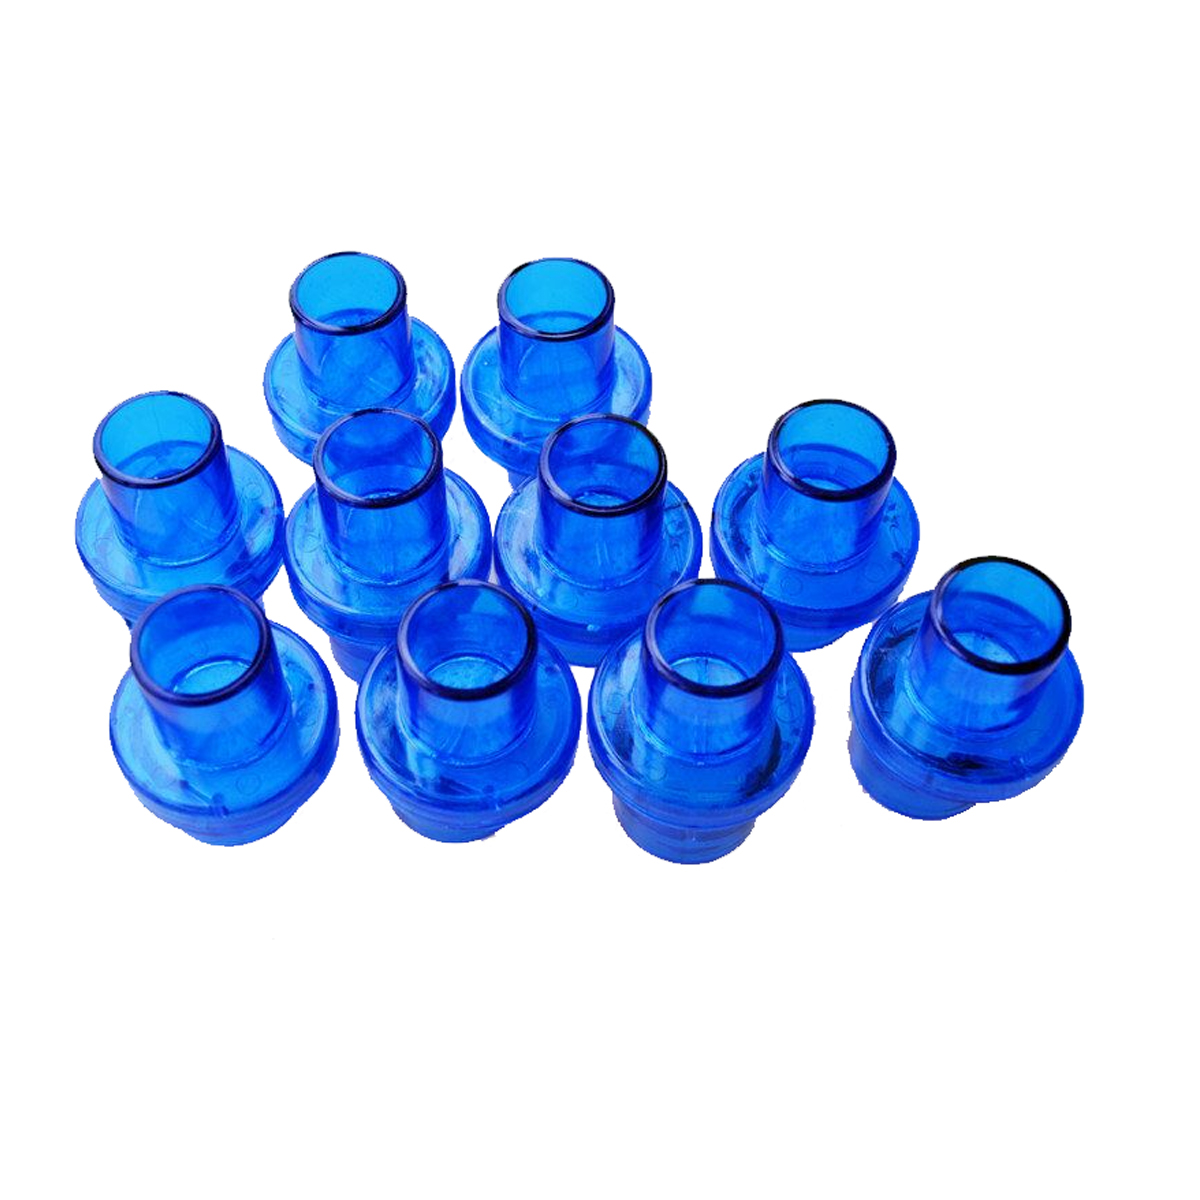 1000Pcs/Lot CPR Mask Training Valves For CPR Resuscitator With One-way Valve w/Filter CPR/AED Practice Accessories Dia 22/17mm 50pairs lot emergency supplies ecg defibrillation electrode patch prompt aed defibrillator trainer accessories not for clinical